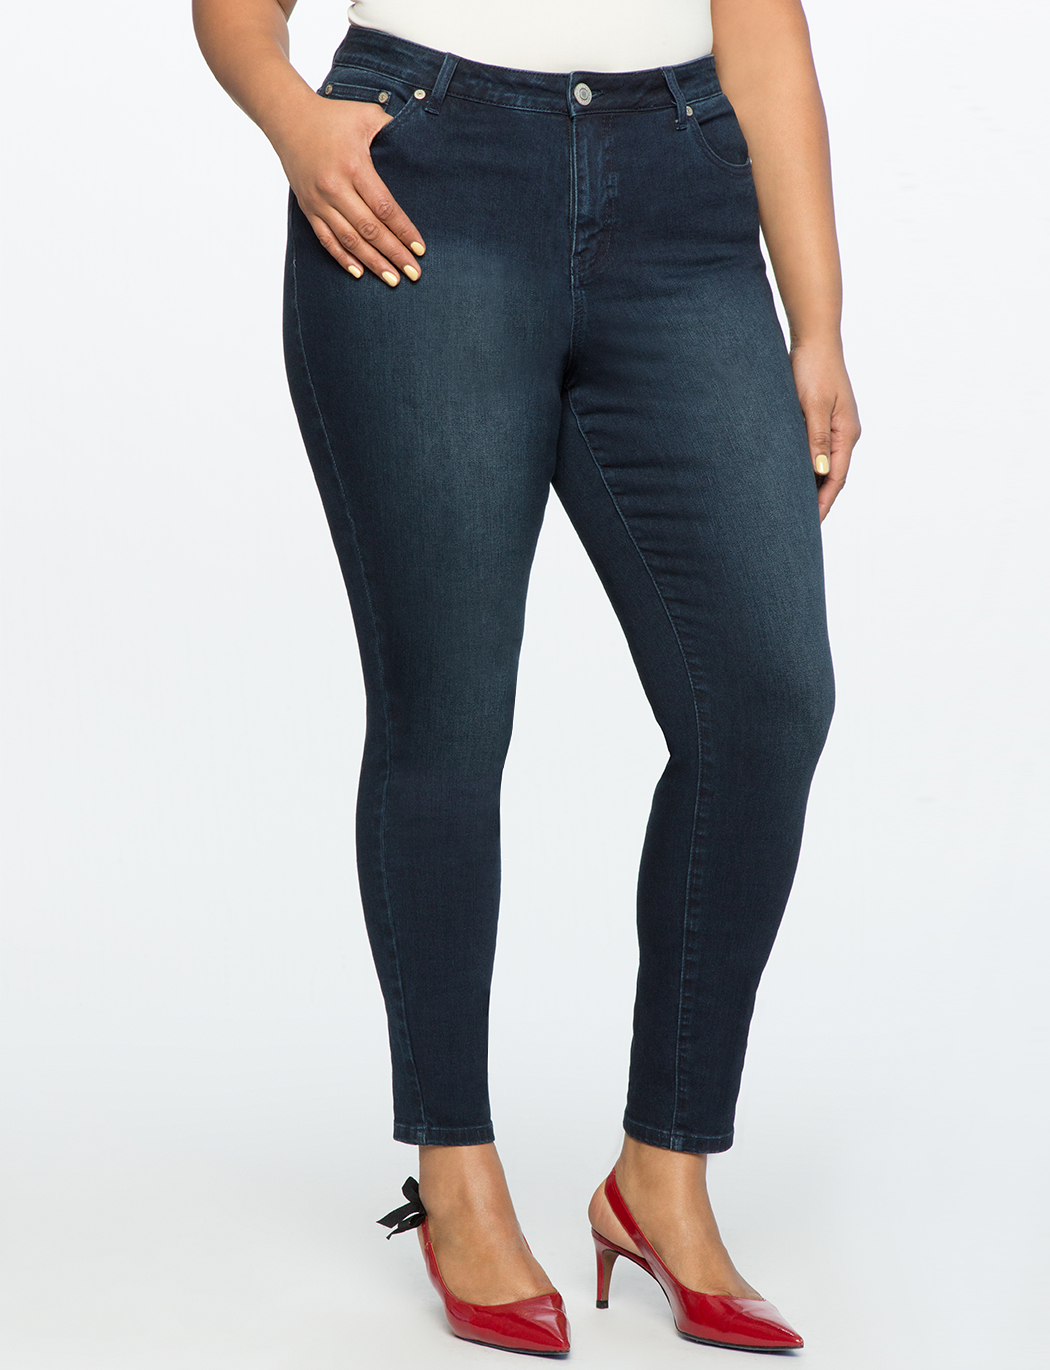 Olivia Sculpting Jean   $49.90